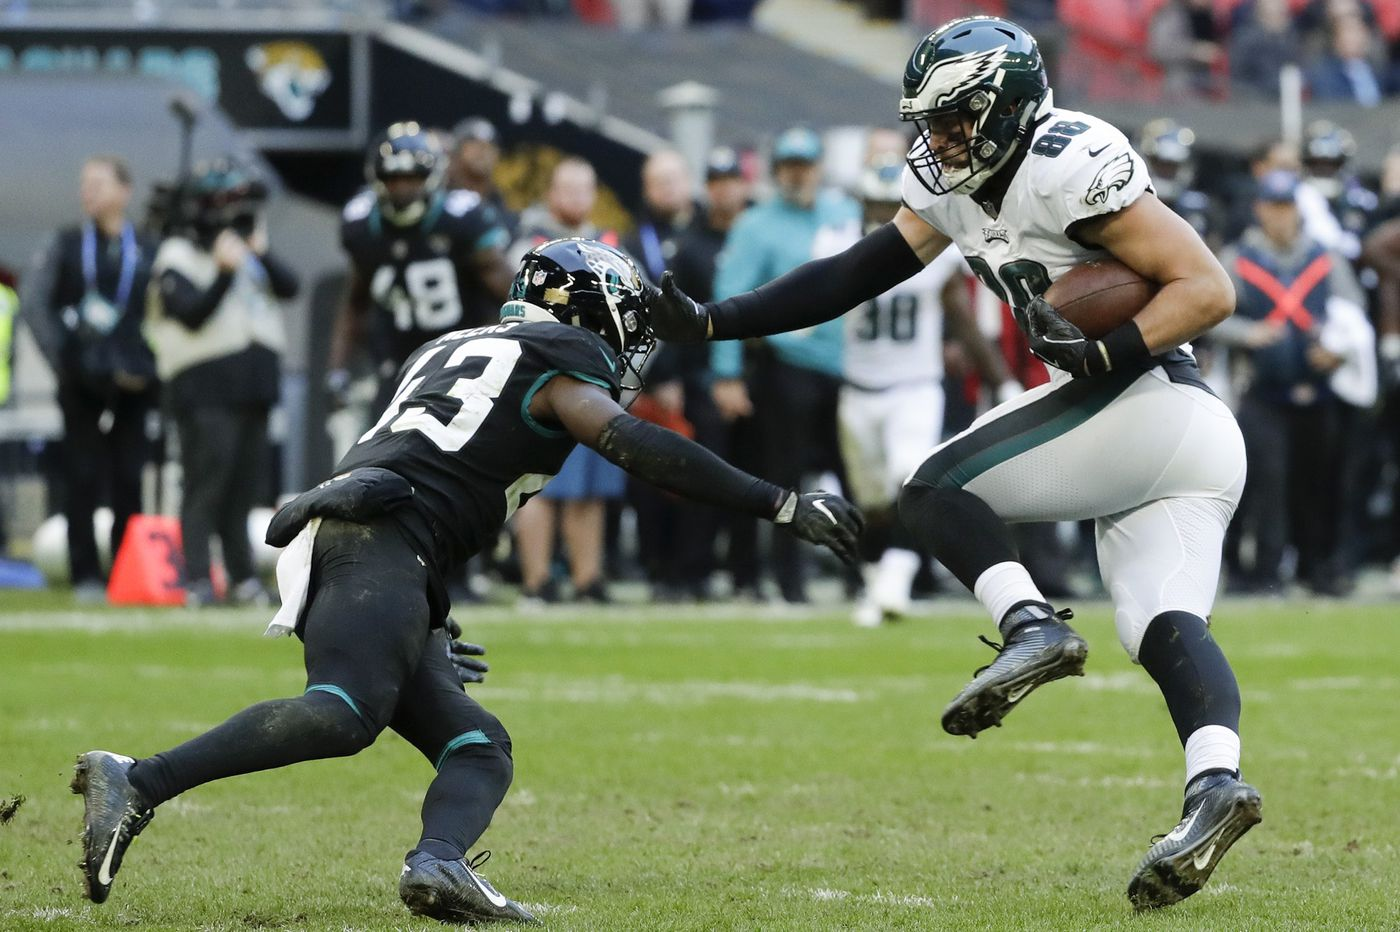 Eagles-Jaguars: Five quick observations from the Birds' win | Paul Domowitch